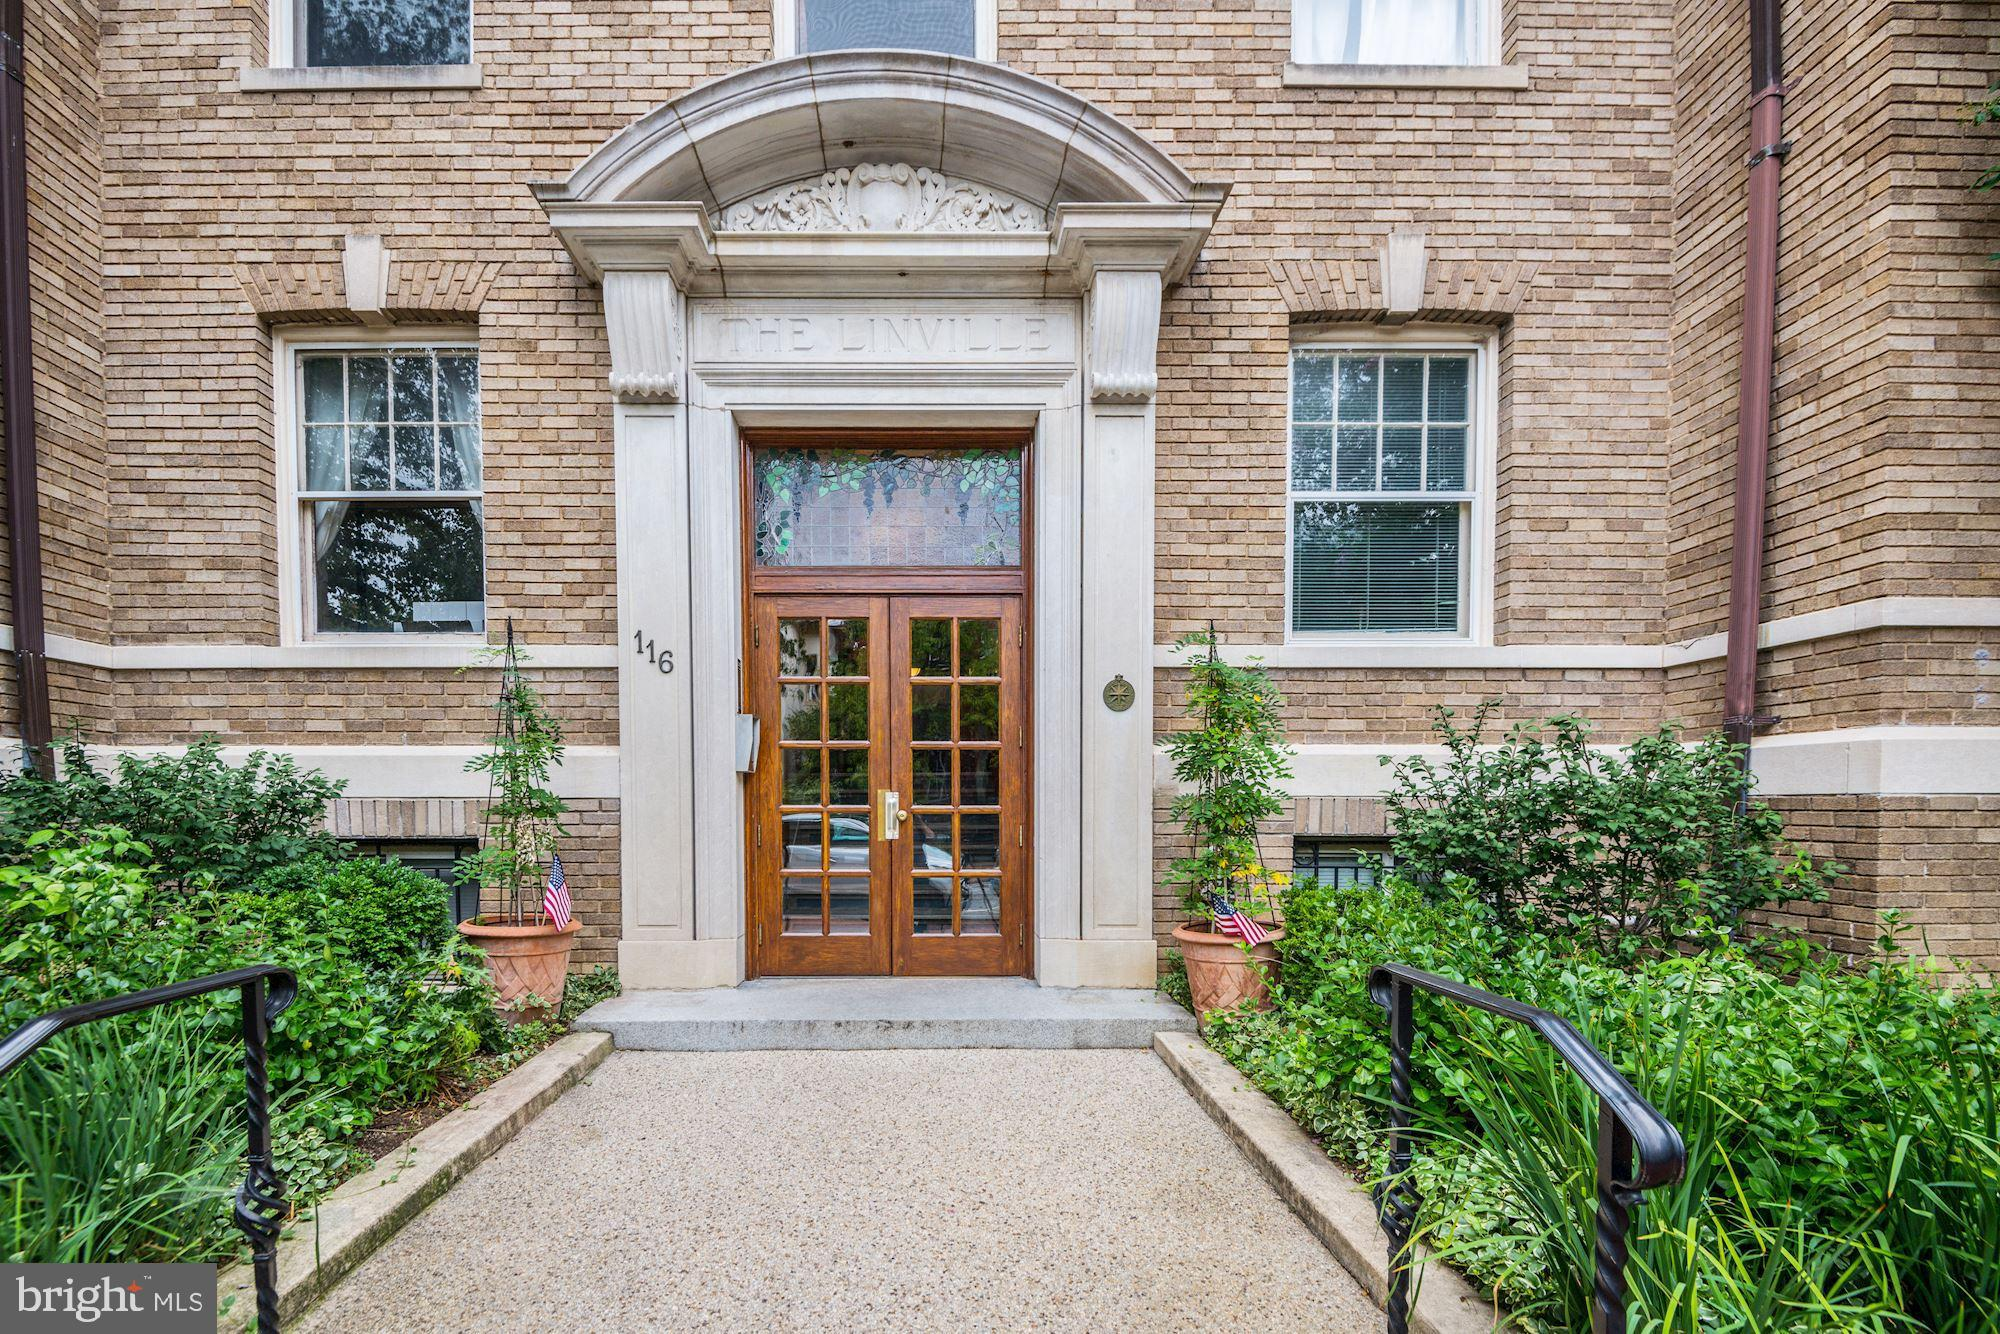 BUY YOUR NEW HOME FOR THE HOLIDAYS.  OPEN HOUSE SUNDAY 12/22 1-3 PM  Check out the virtual tour by clicking the movie icon. Capital Hill at its best, blocks from everything, Eastern Market, Eastern Market metro, the Capitol, restaurants, this home has original fixtures, flooring, tall ceilings, windows, and trim work.  The master includes a wall of built in closets, drawers, shelving tastefully done, AND a walk in closet.  Three additional huge closets in the unit, Bar Stools and separate microwave conveys, easy to use laundry in the basement. Second Bedroom can fit queen bed, and public records indicate it as a bedroom, but no closet.  Pictures have both with Queen bed and without.  Charming art deco brick building with 17 units.